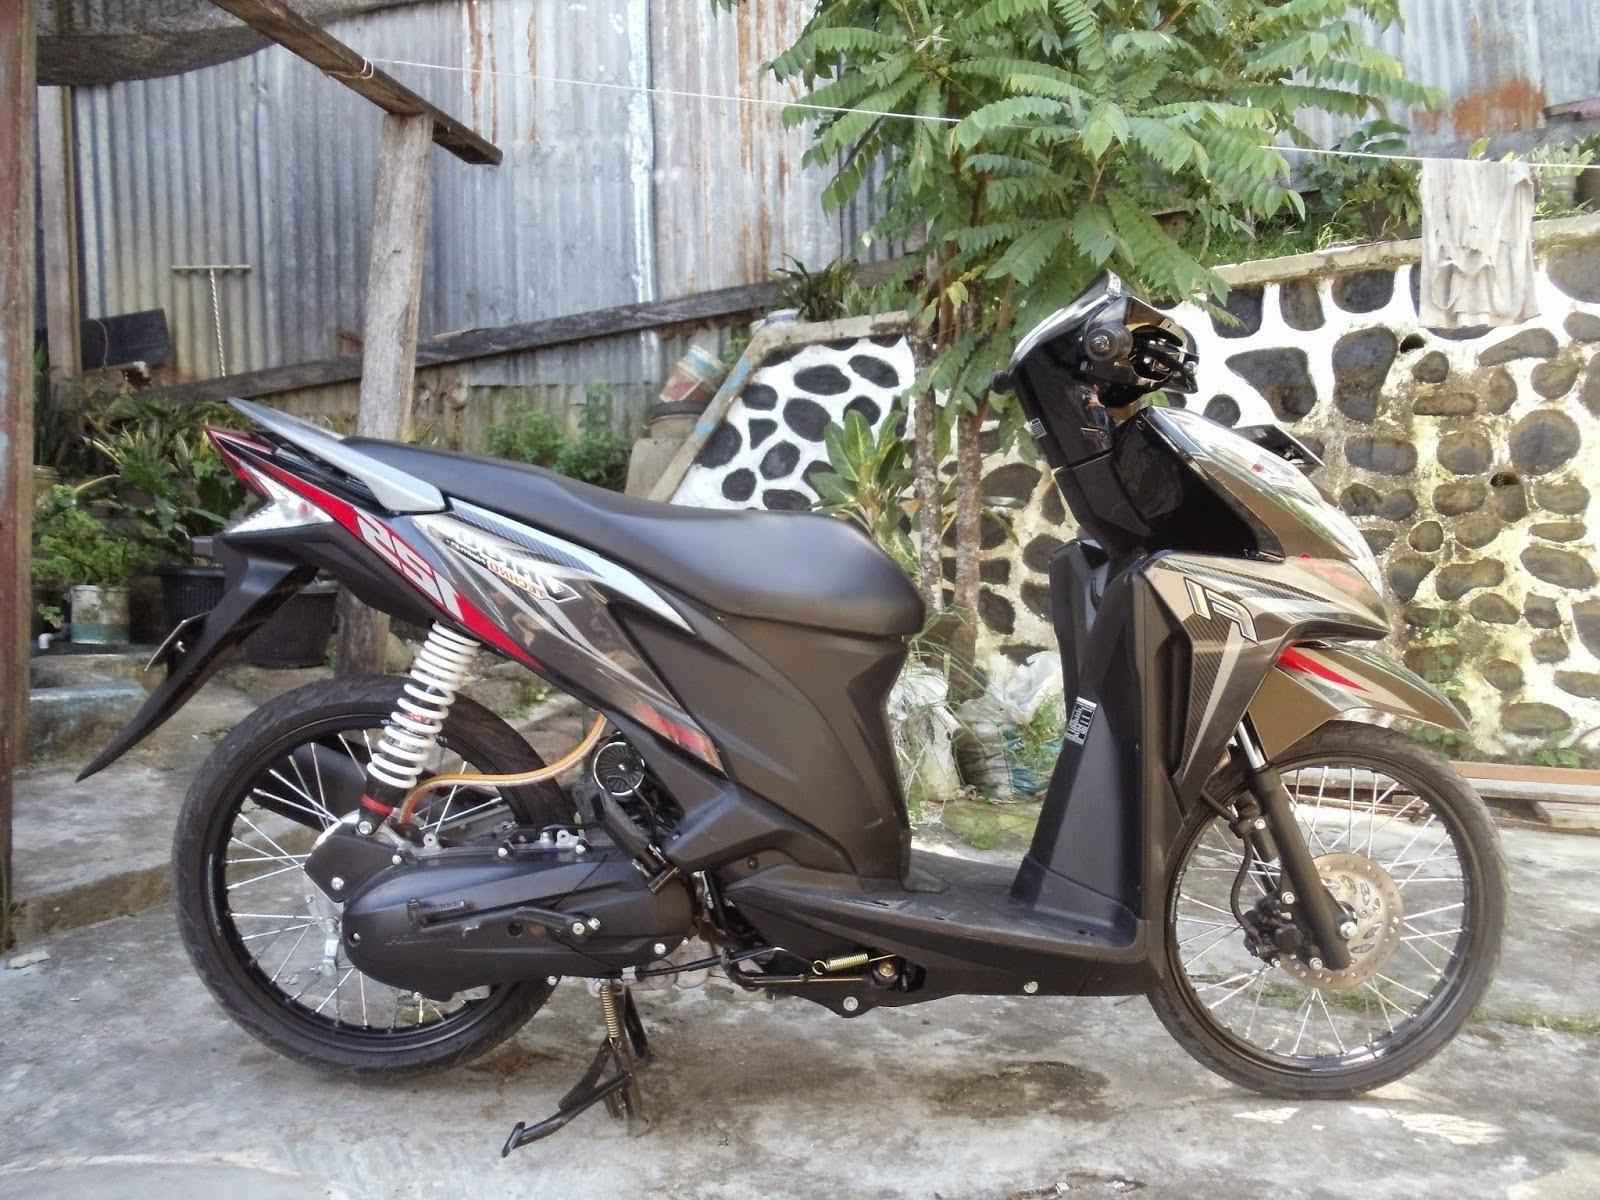 Gambar Modifikasi Motor Vario 125 Terkeren Earth Modification